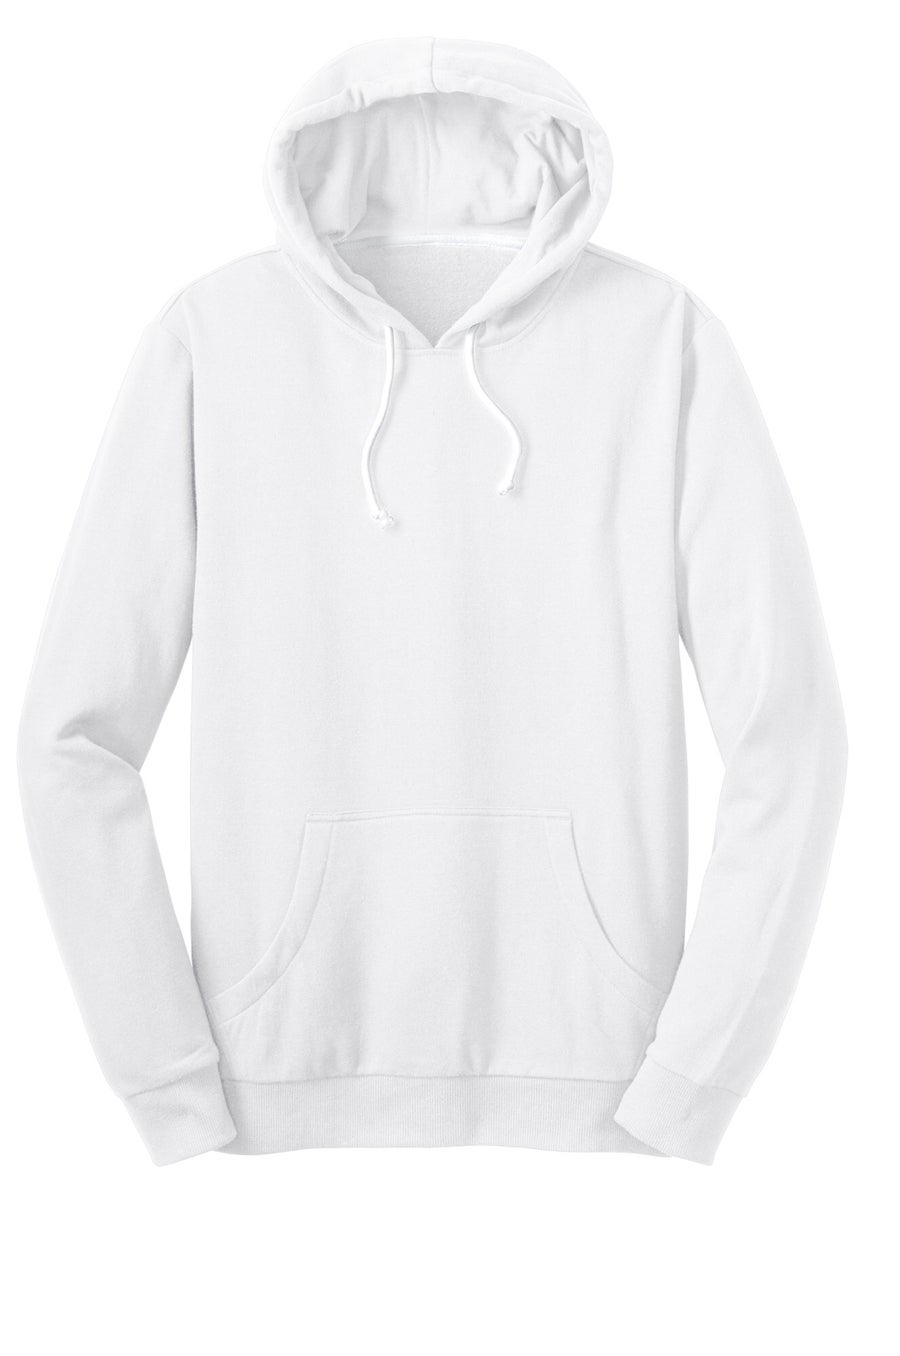 Image of PULLOVER HOODIE // PURE WHITE